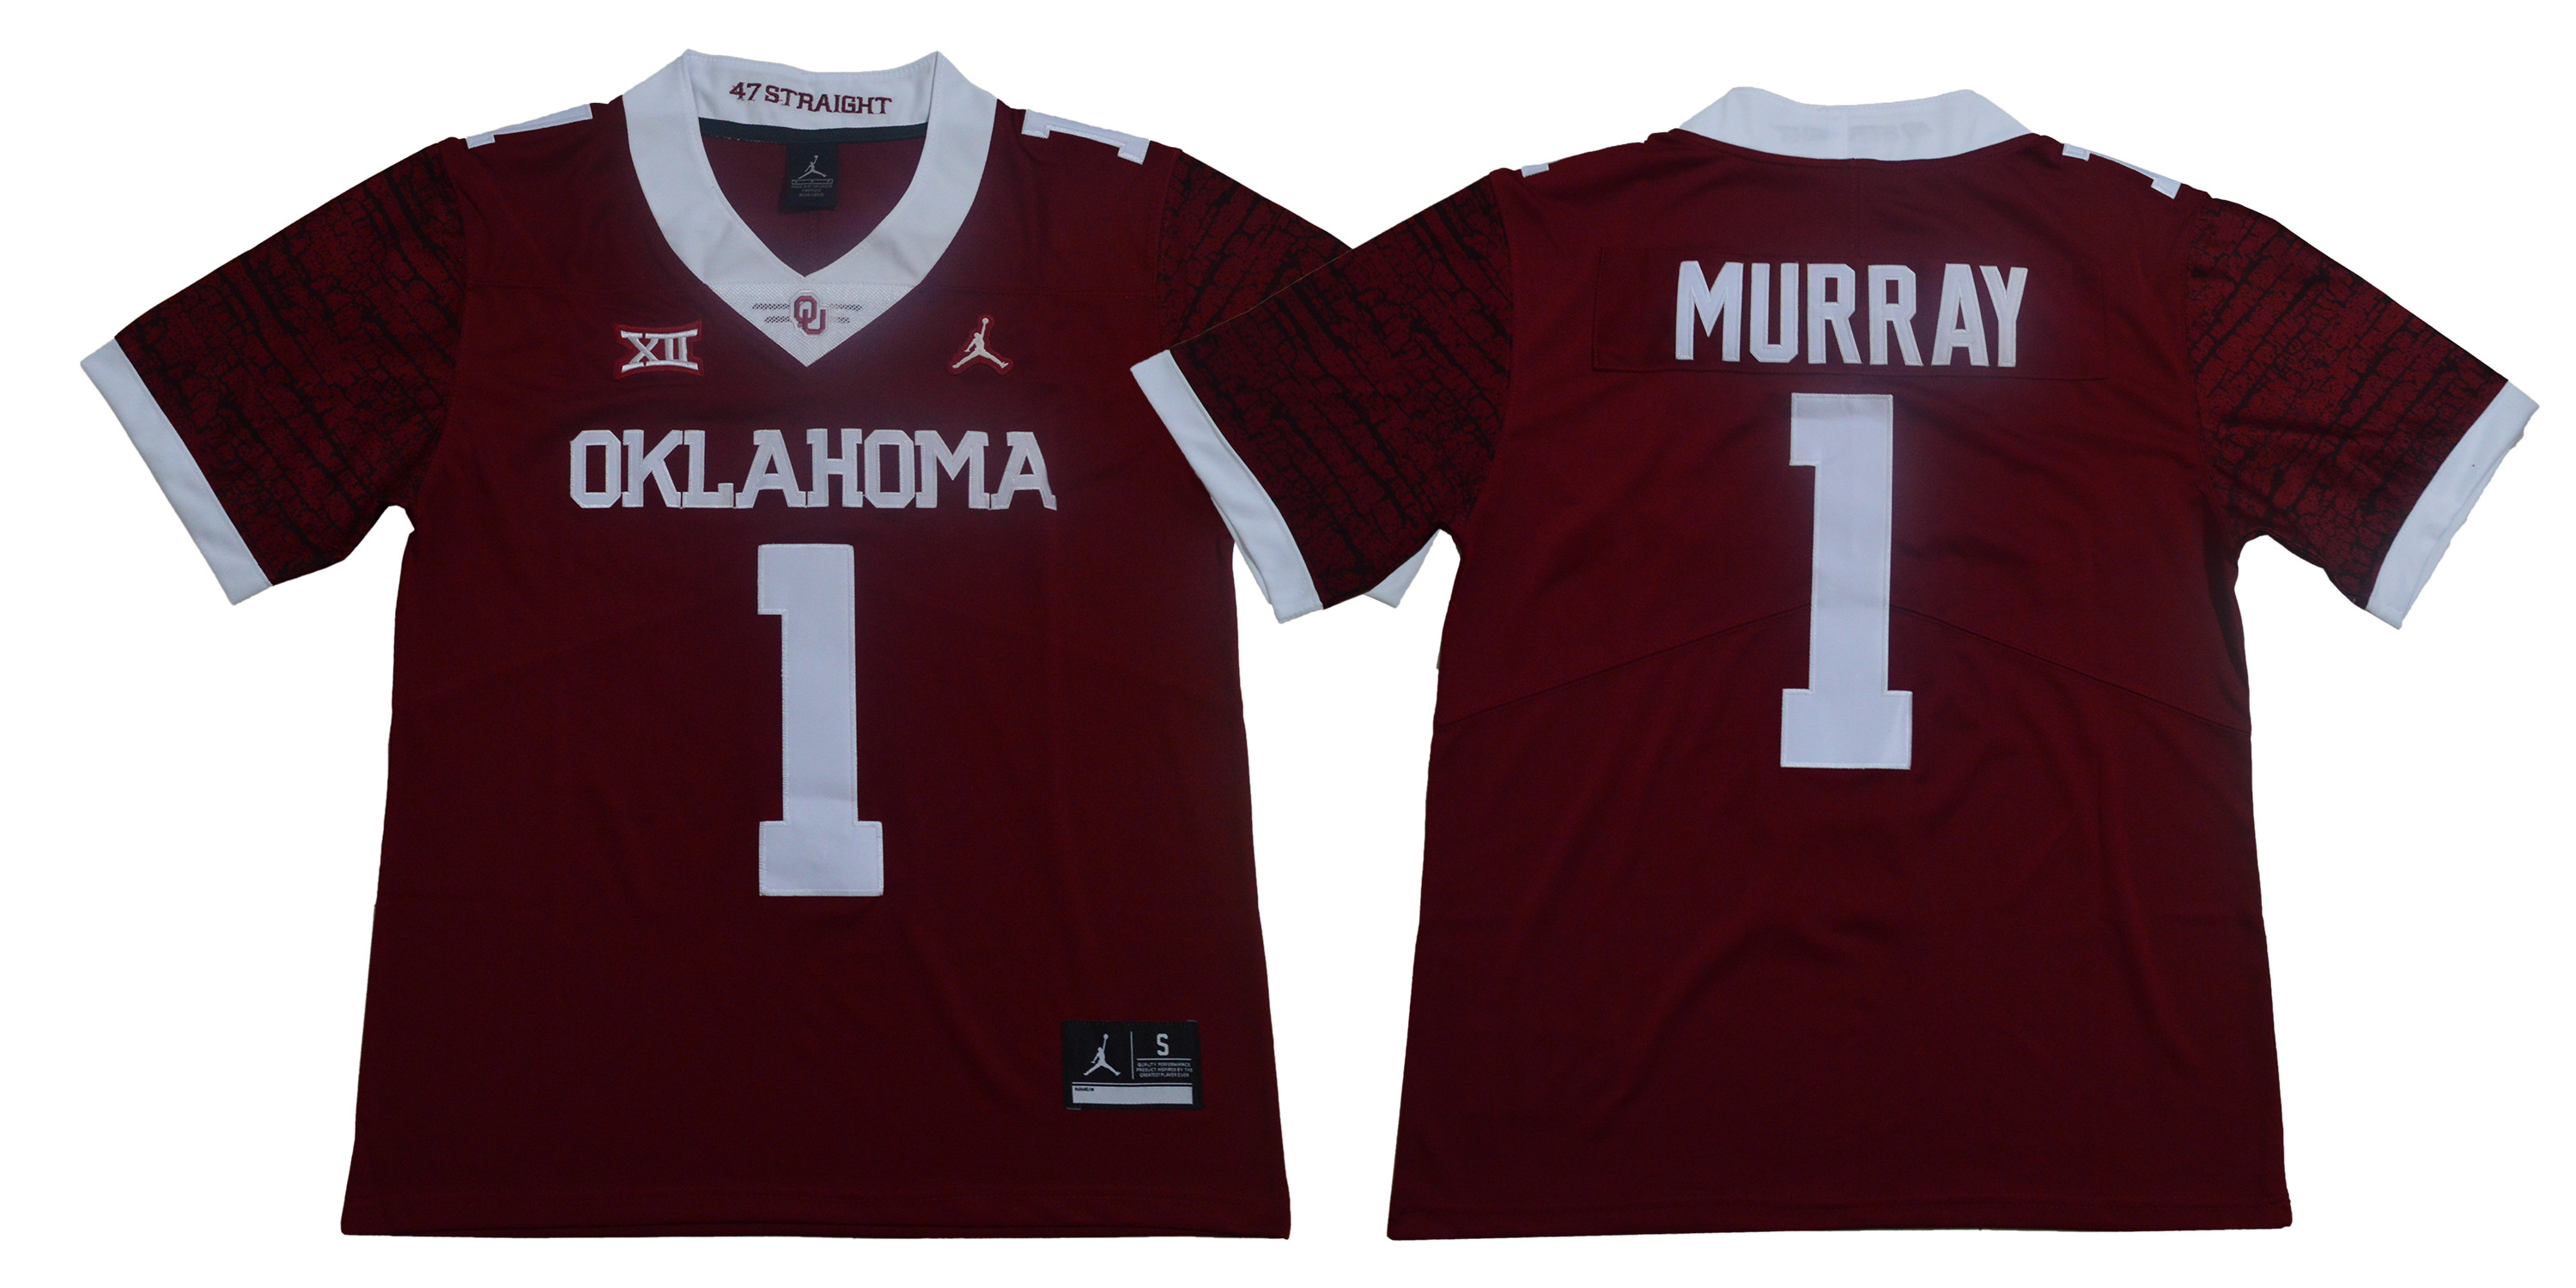 Oklahoma Sooners 1 Kyler Murray Red 47 Game Winning Streak College Football Jersey